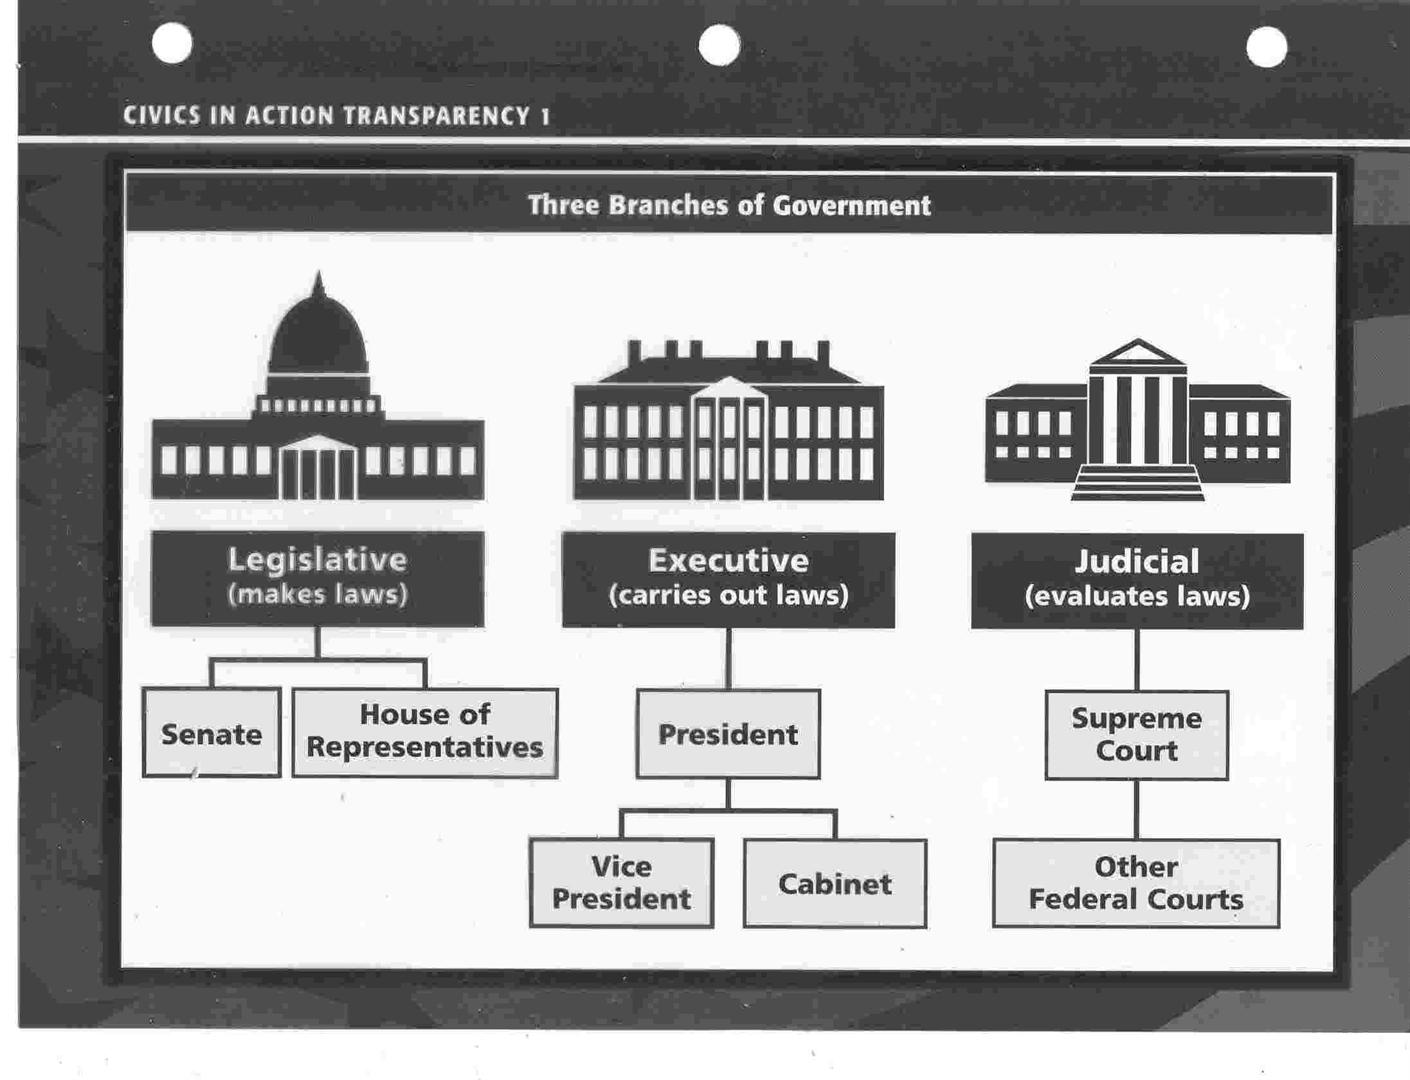 most powerful branch of government Free essay: the united states government braces its power among three powerful branches, legislative, executive and judicial these branches interact with.